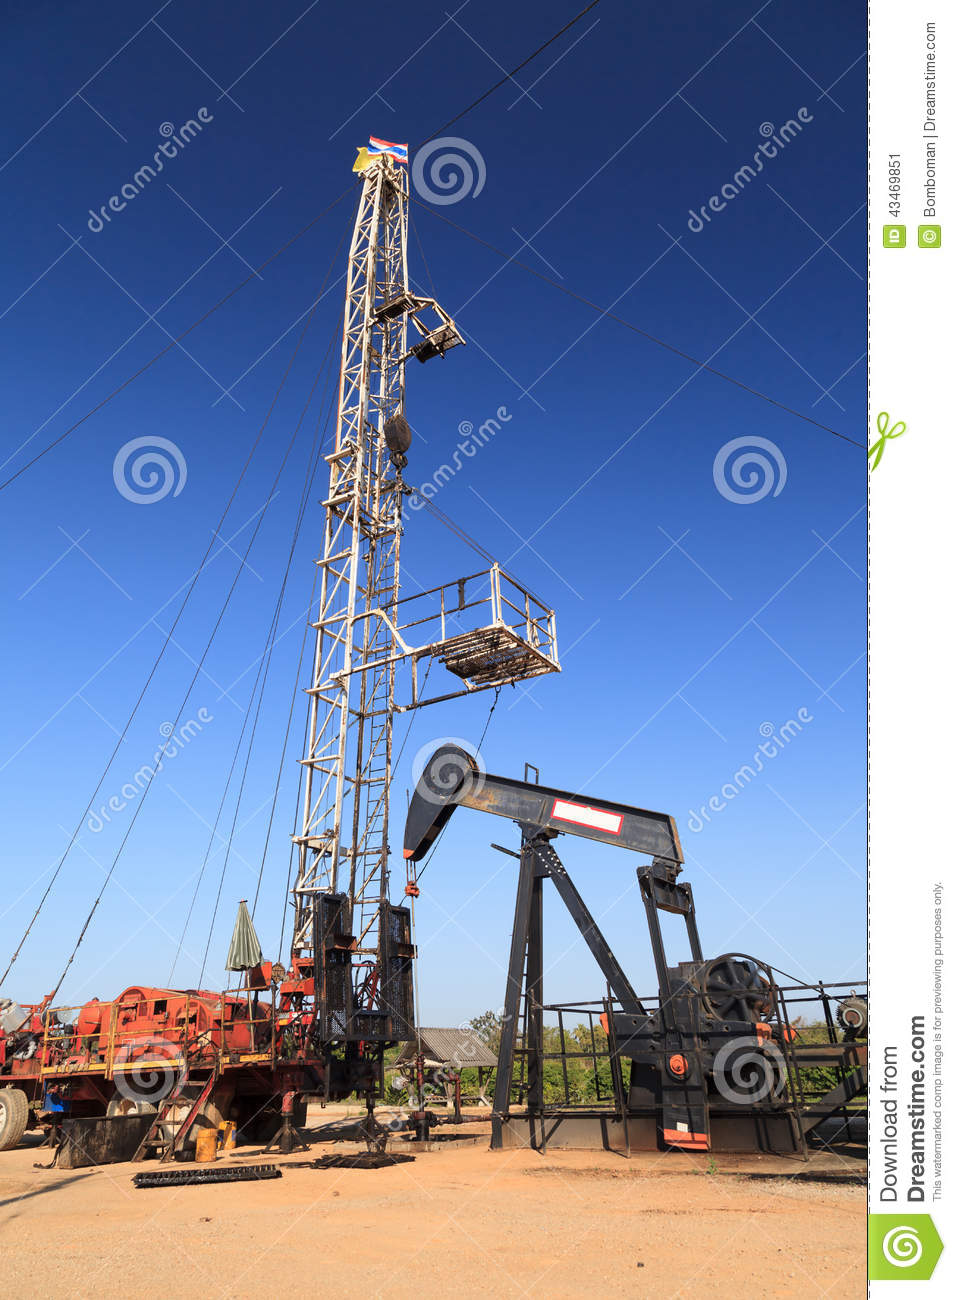 Oil Rig Scammer Engineer